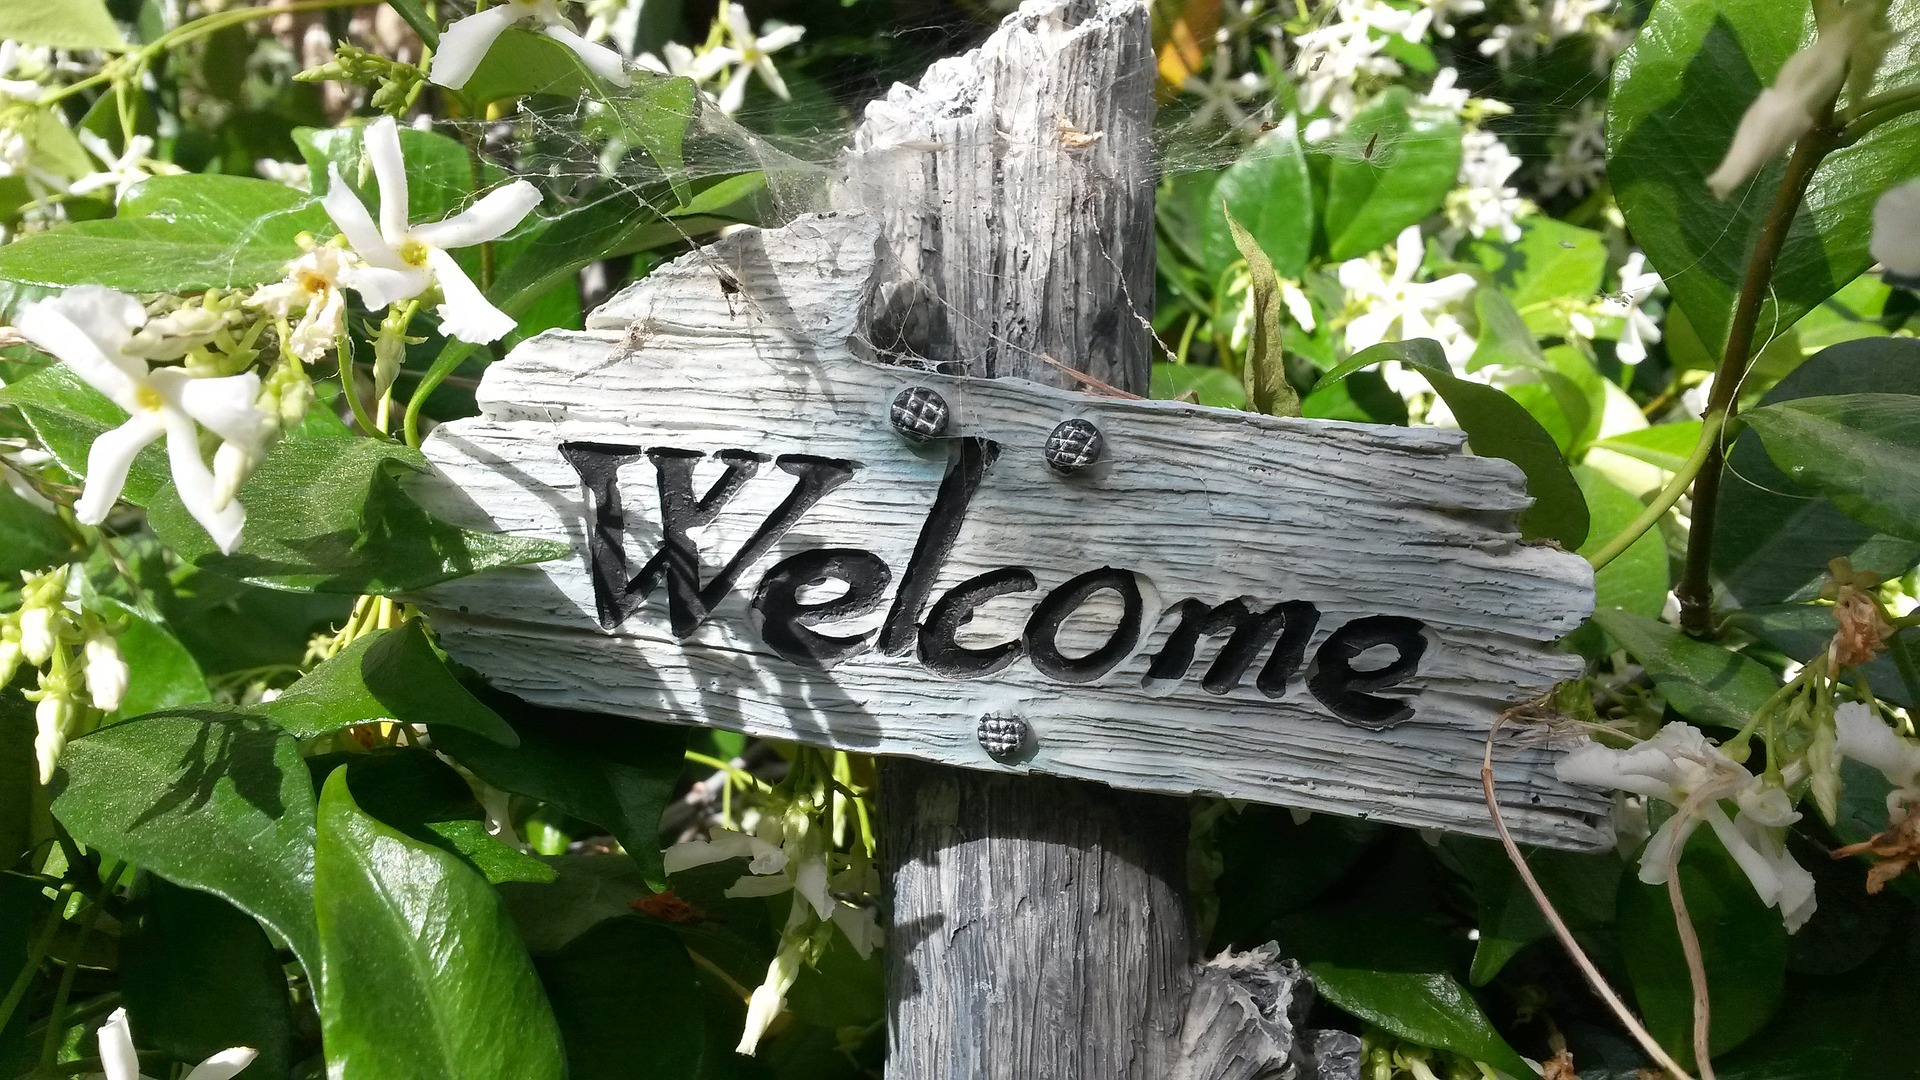 Wooden welcome sign in a garden